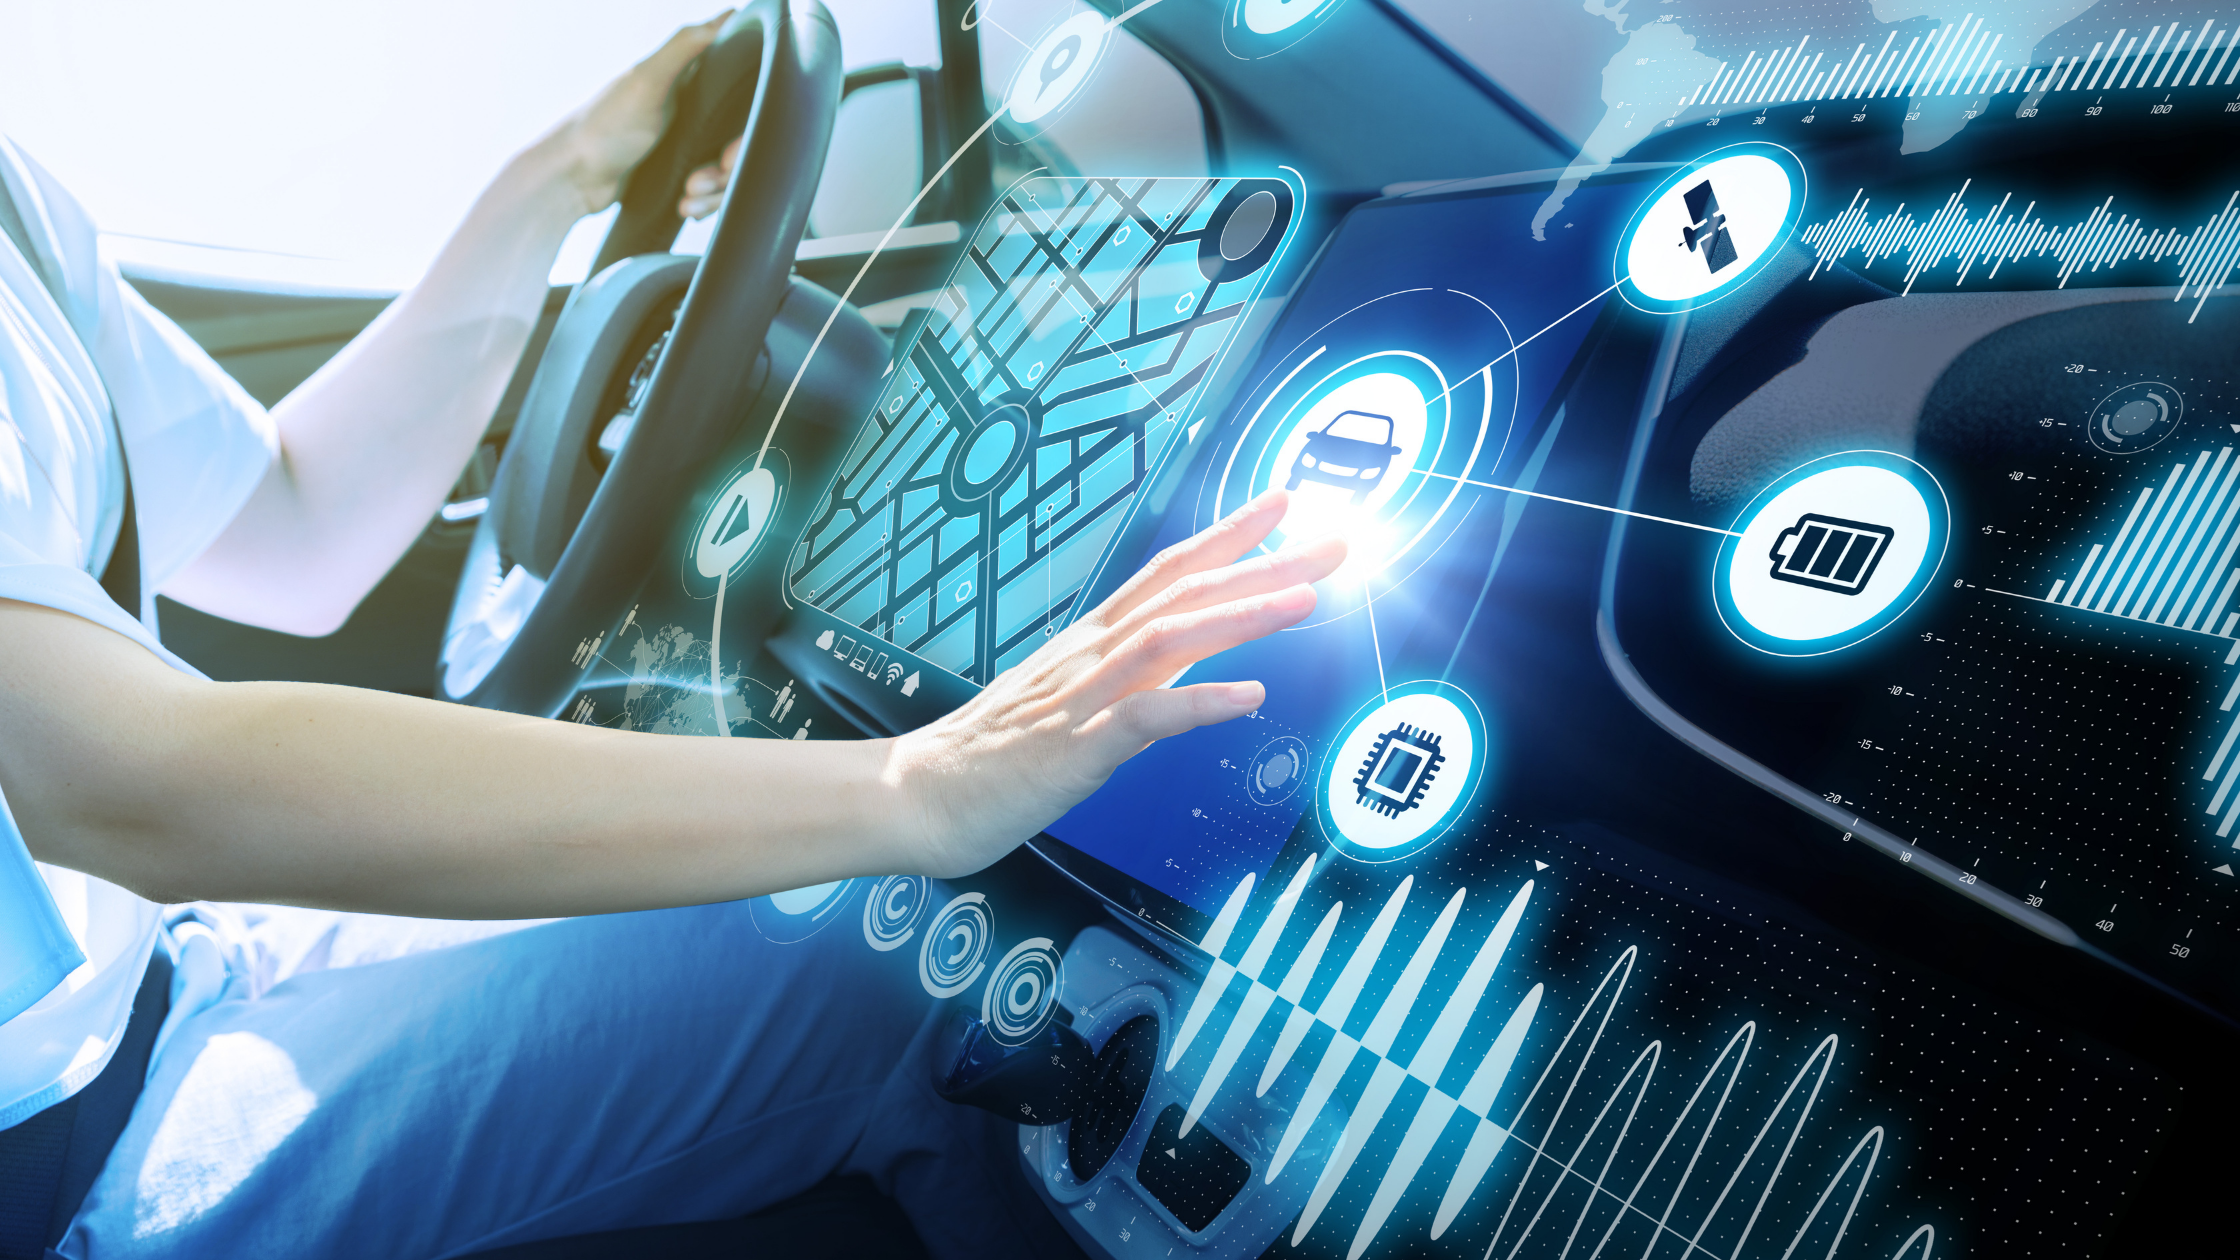 Semiconductors forecasted to account for 20% of vehicle costs by 2030